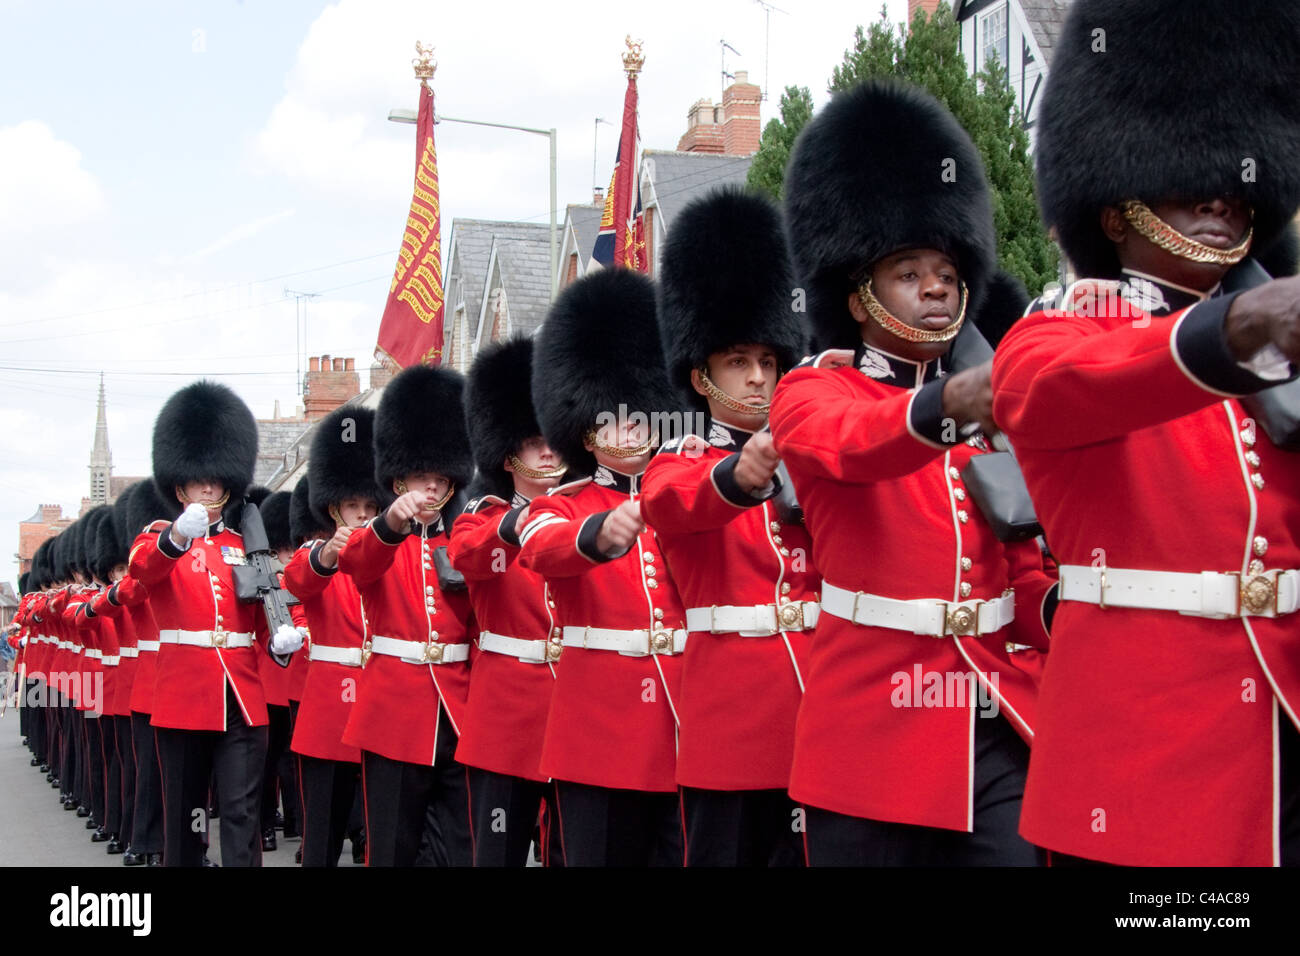 The 1st Battalion Scots Guards at the Freedom of Wantage Parade 21 May 2011. Two black soldiers in front rank. - Stock Image